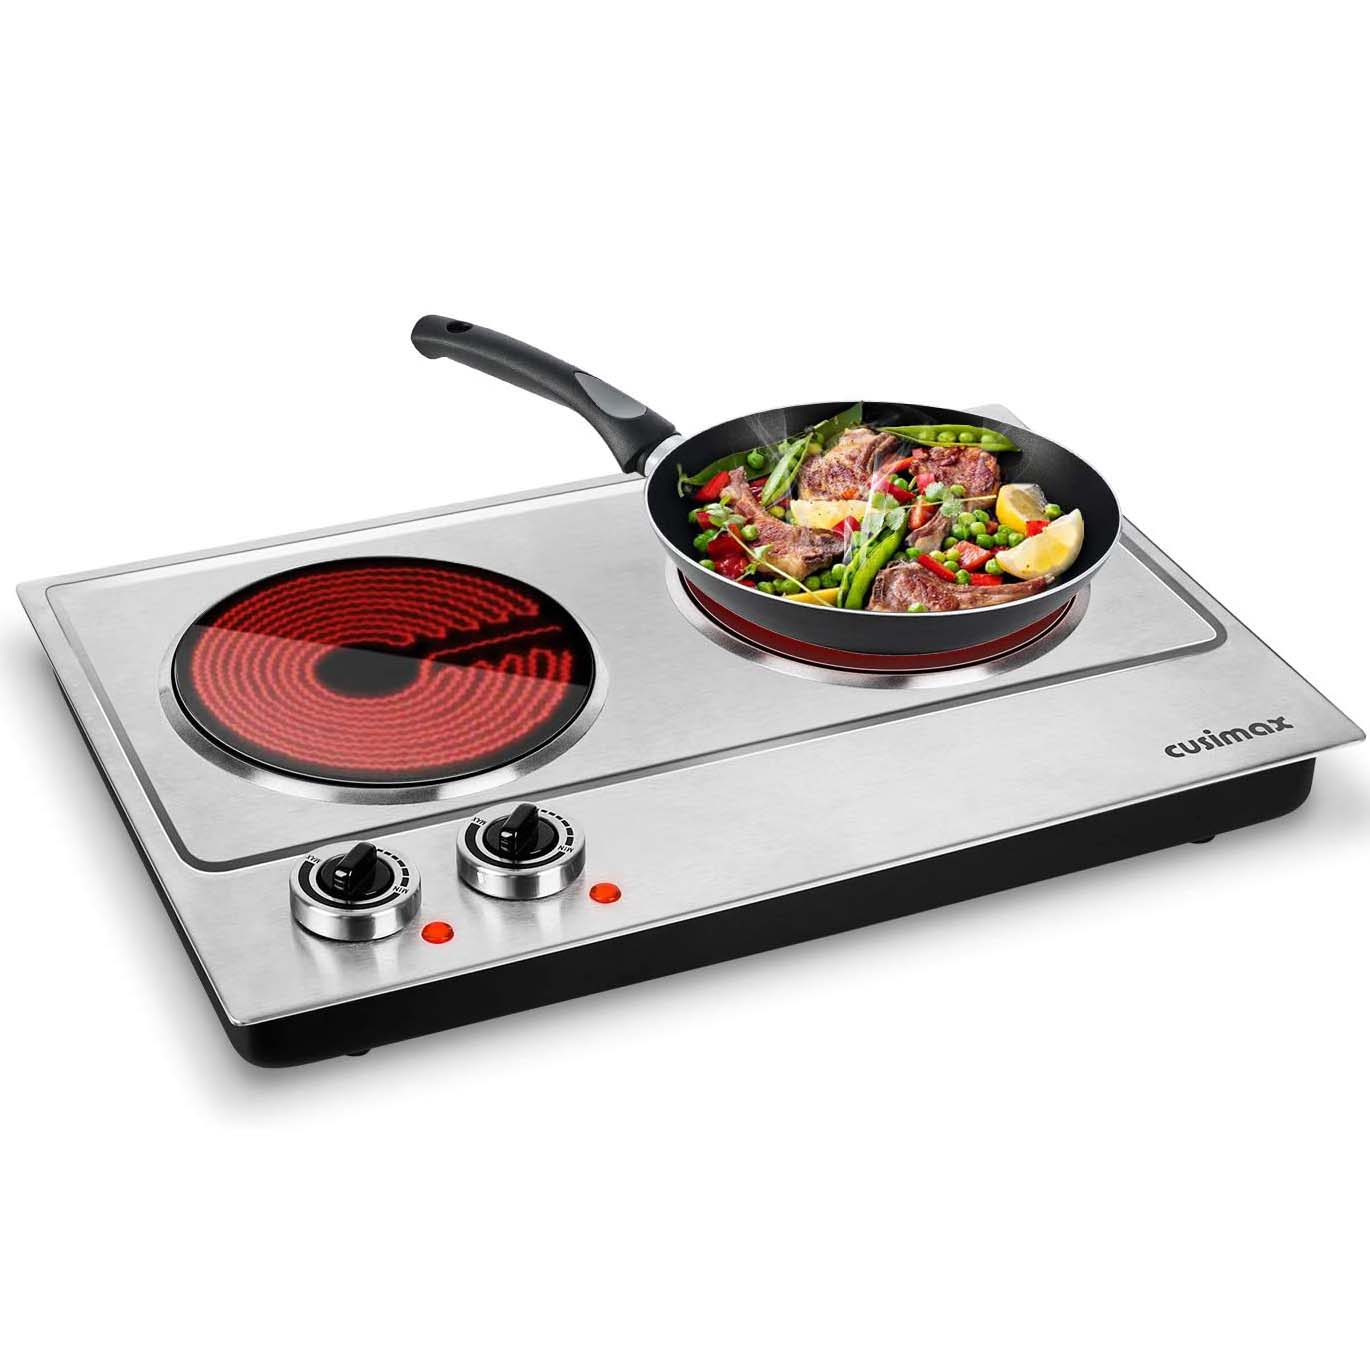 SKU 01 Infrared Double Hot Plates